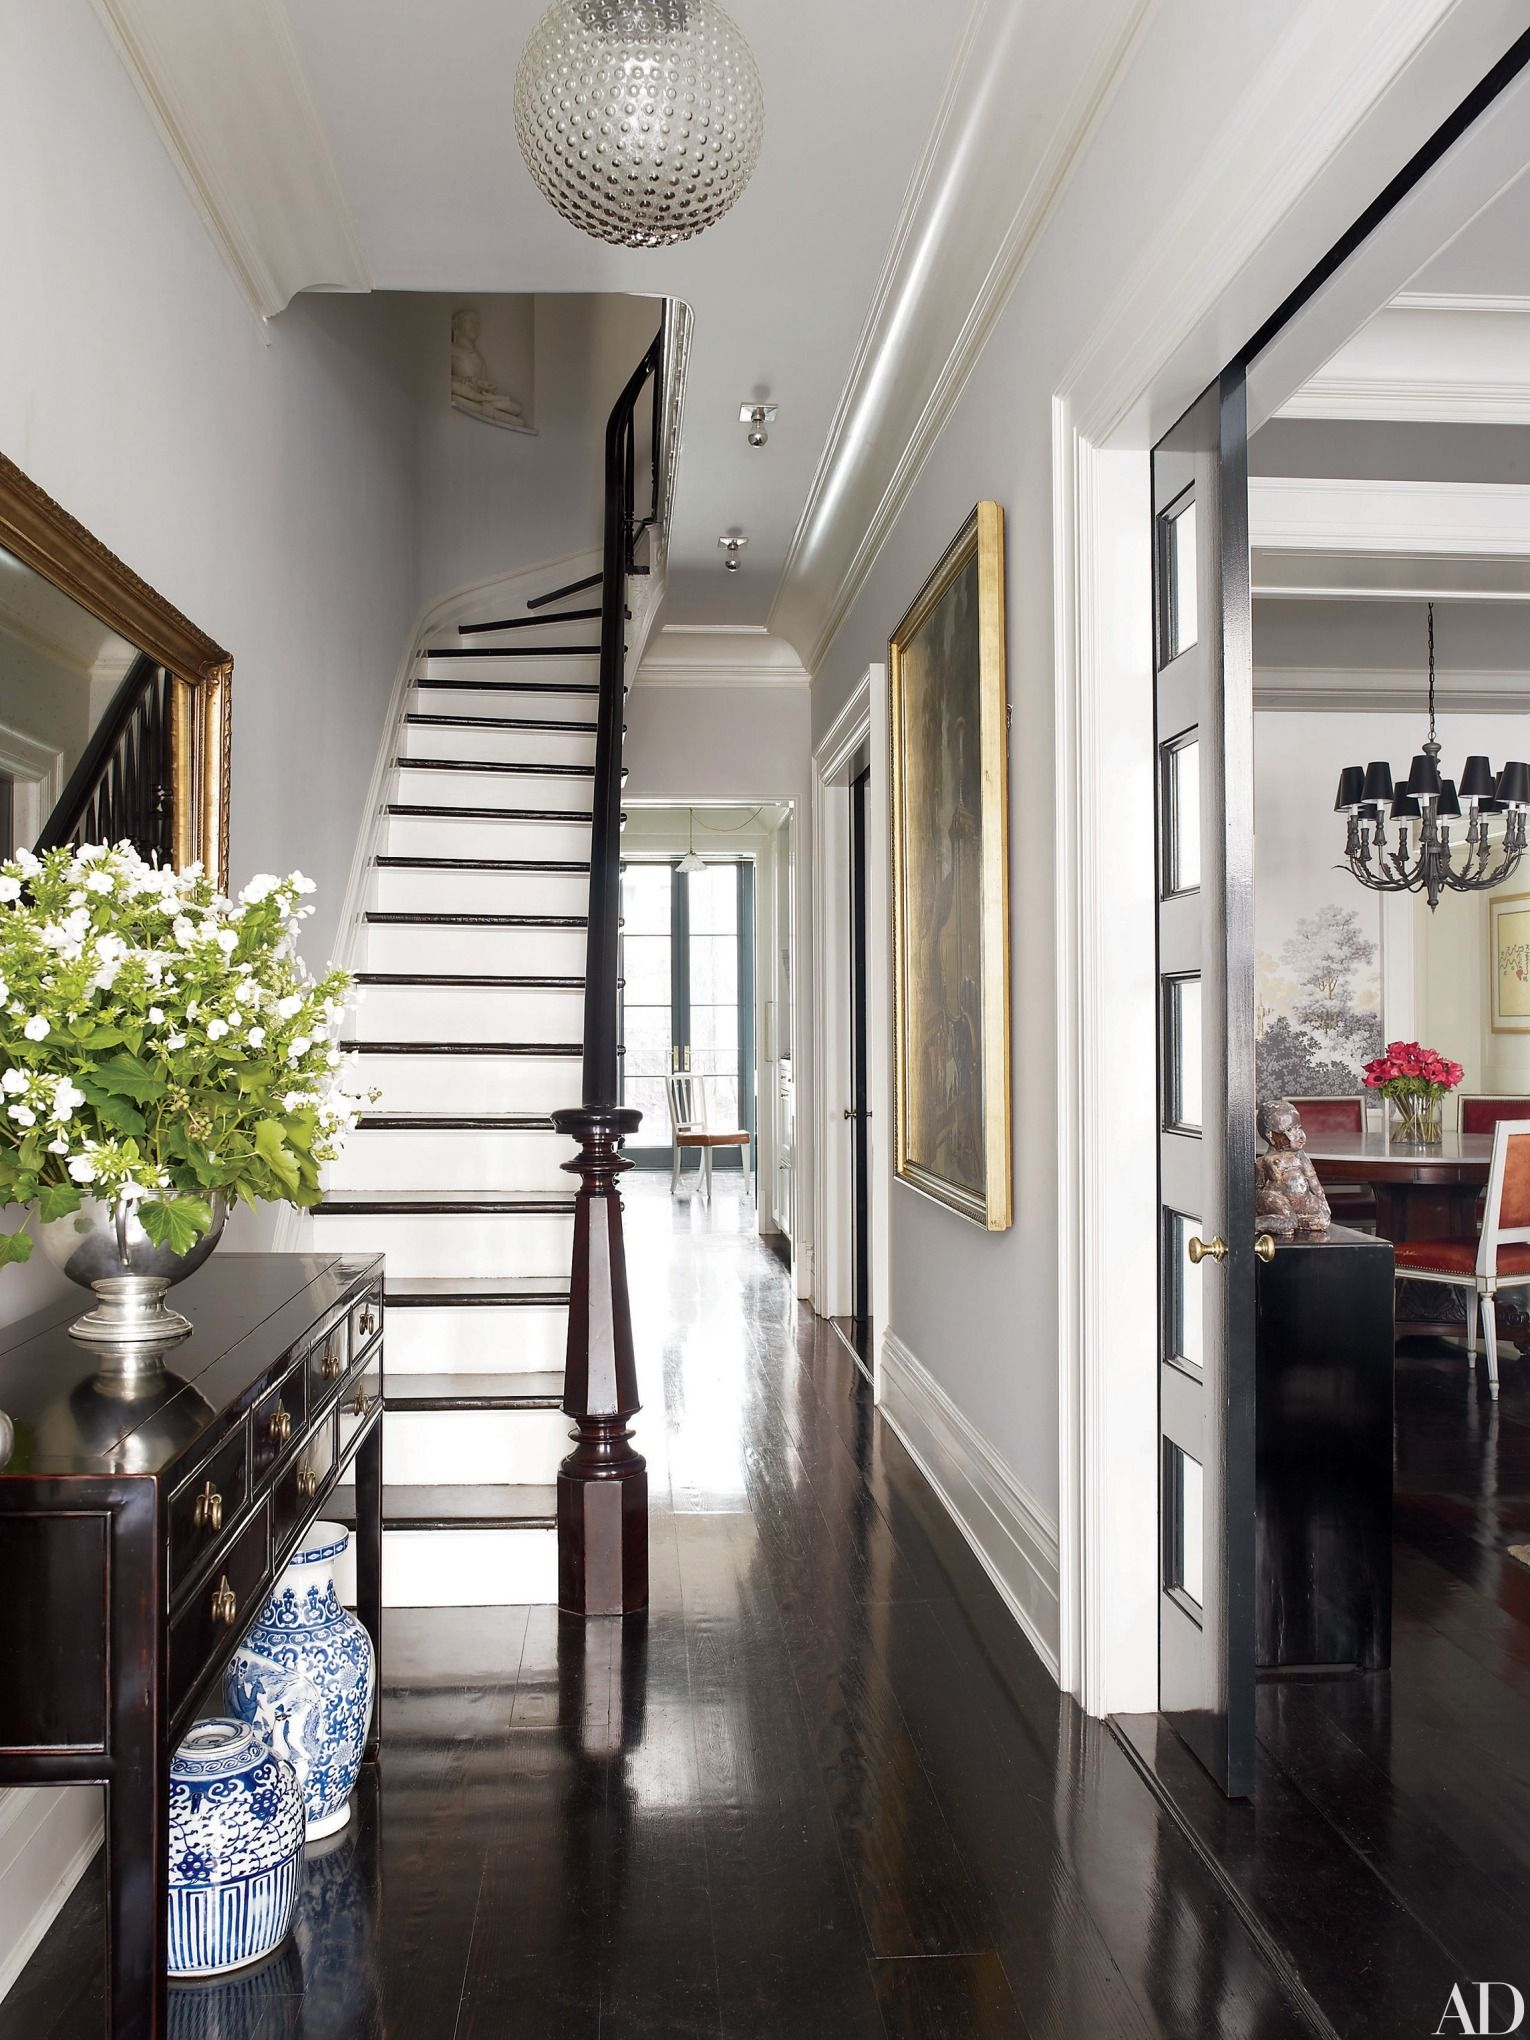 The Foyer Of Brooke Shieldsu0027s New York City Townhouse, Is Furnished With An  1860s Chinese Desk Adorned With Decorative Blue And White Vessels.